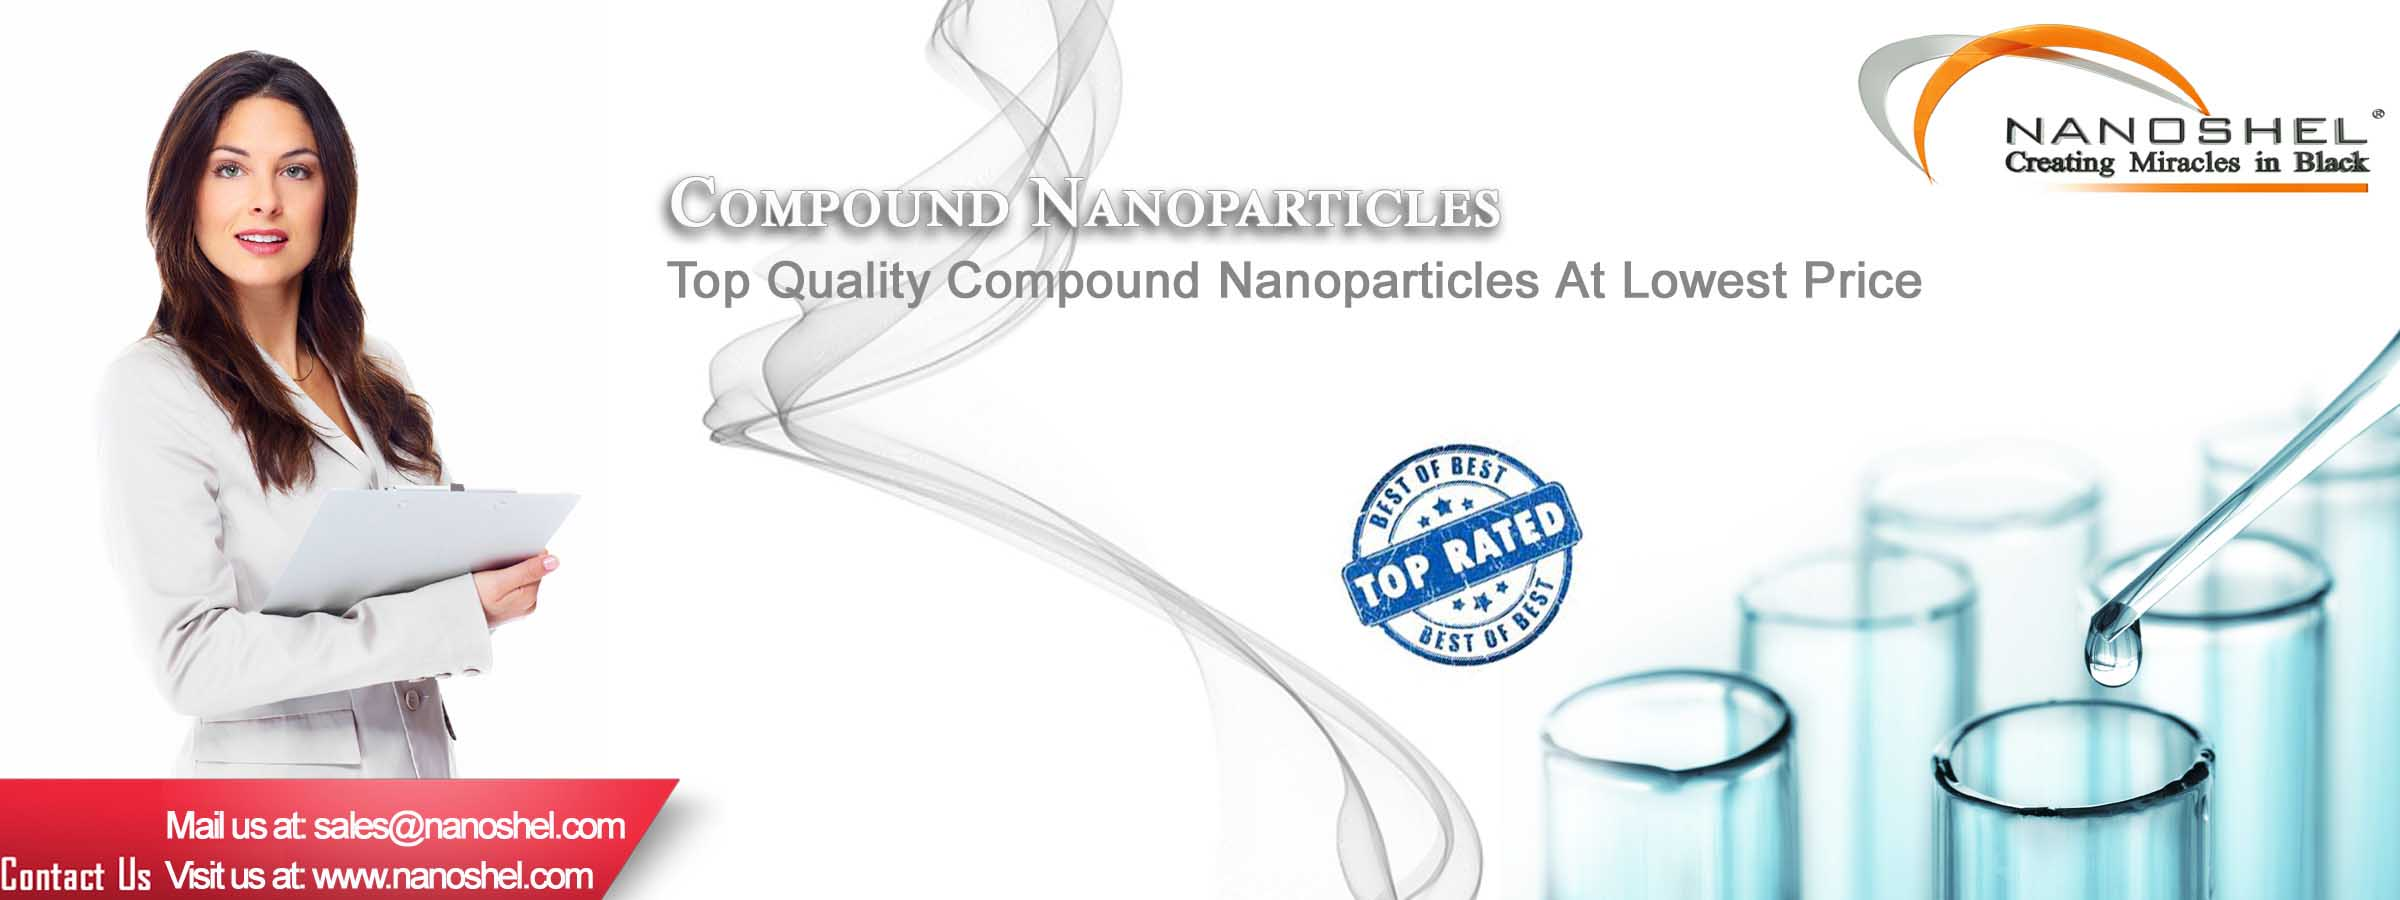 CdTe Nanoparticles